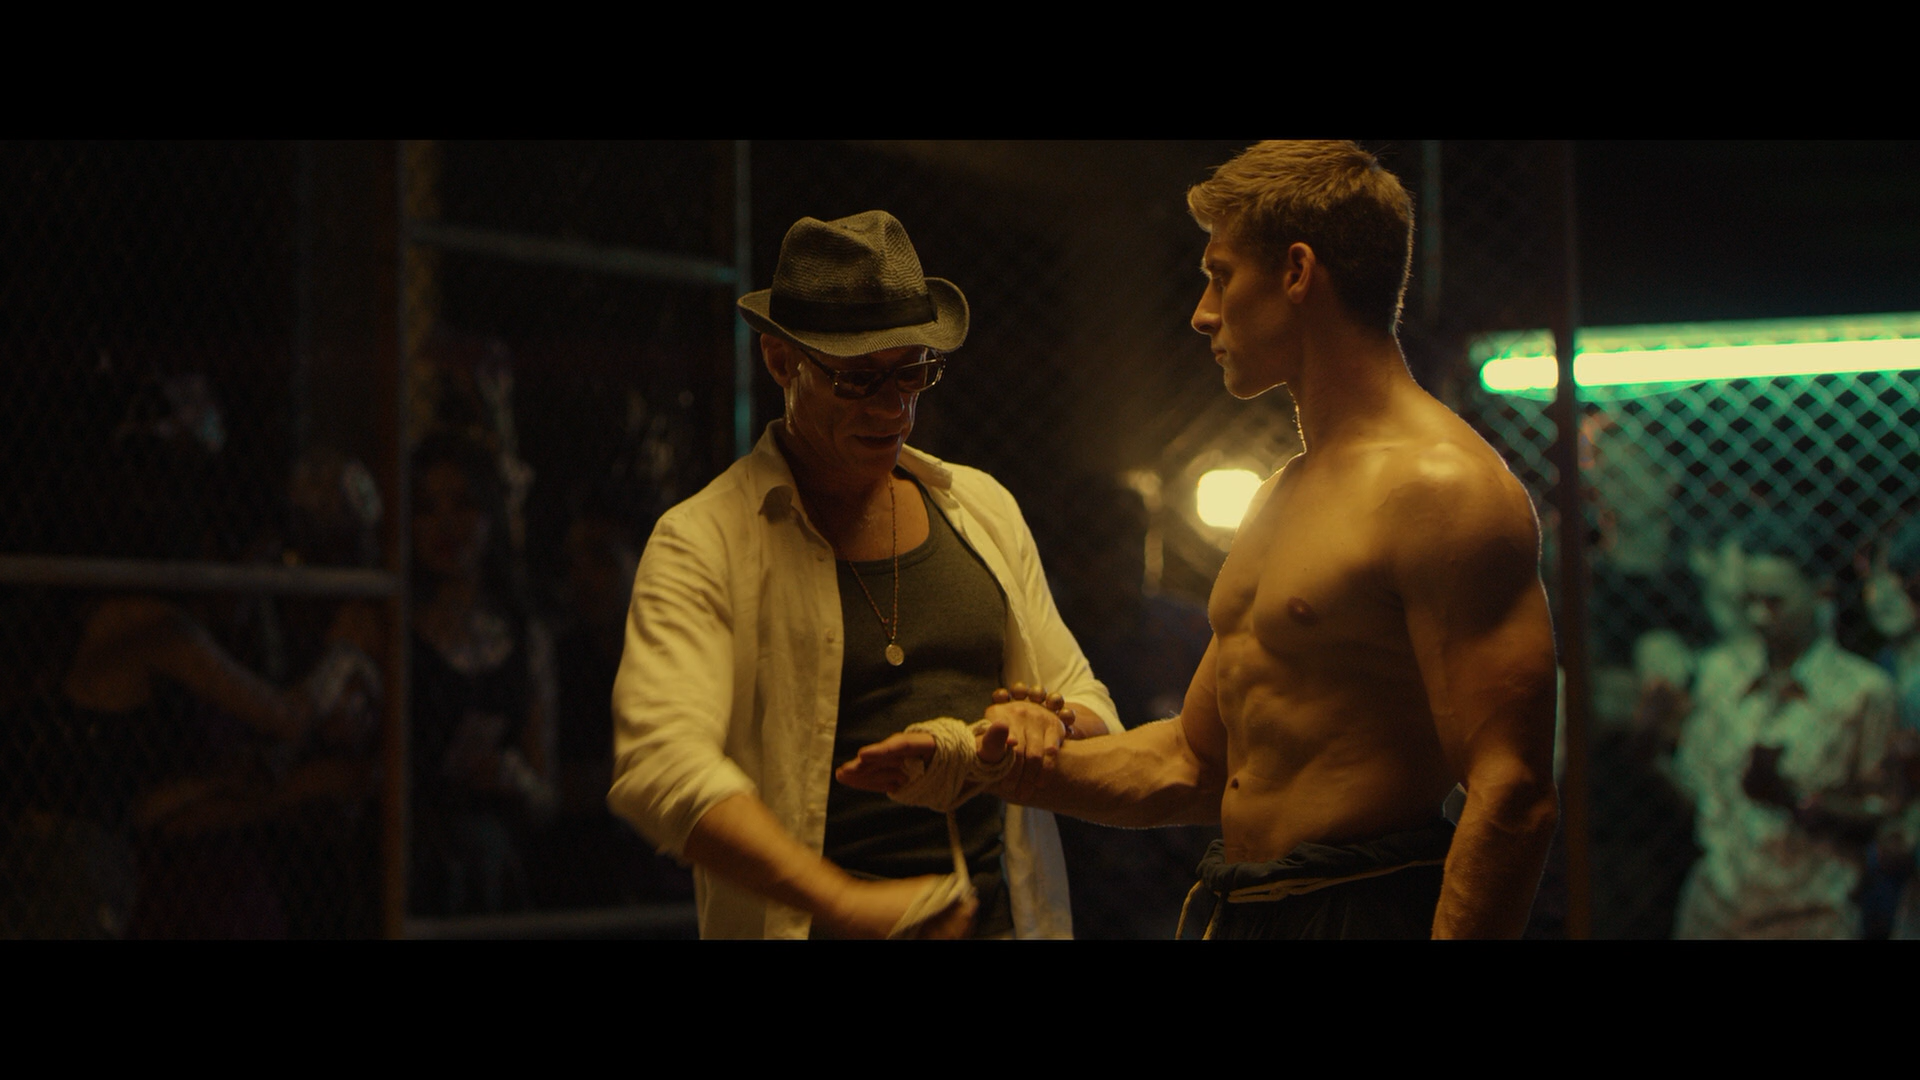 Kickboxer Retaliation Movie Wallpapers 103 images in Collection 1920x1080